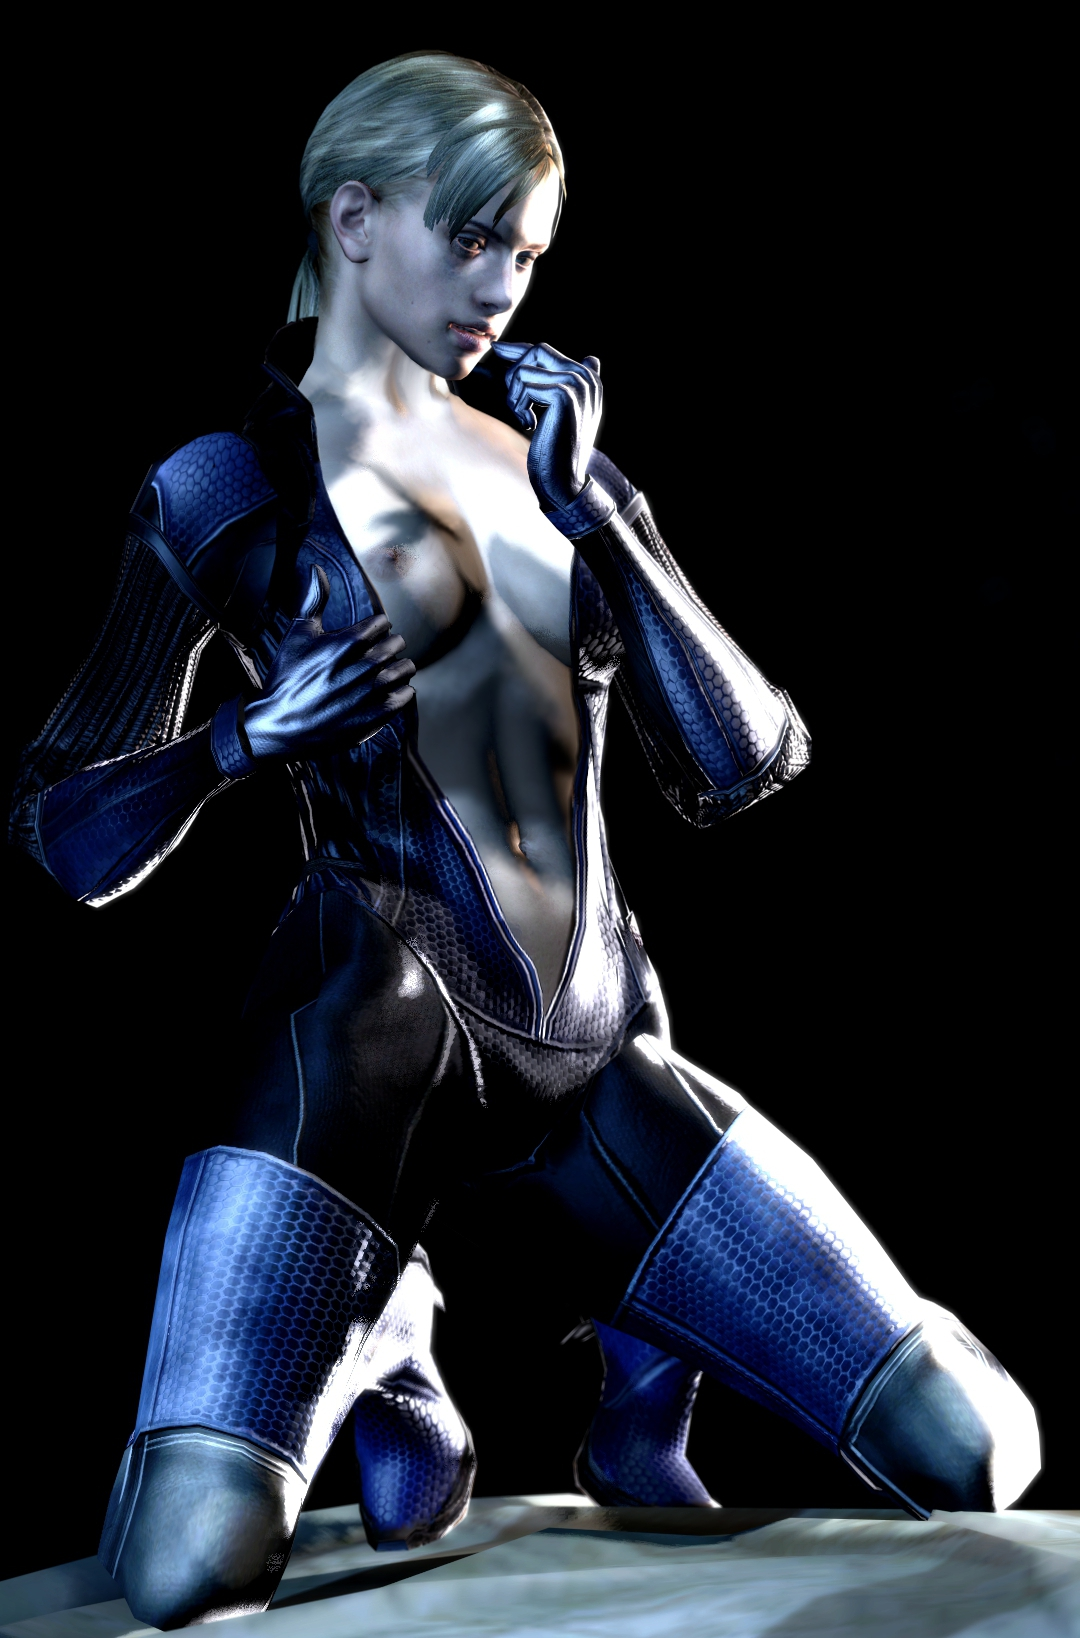 Jill valentine naked hentai picture